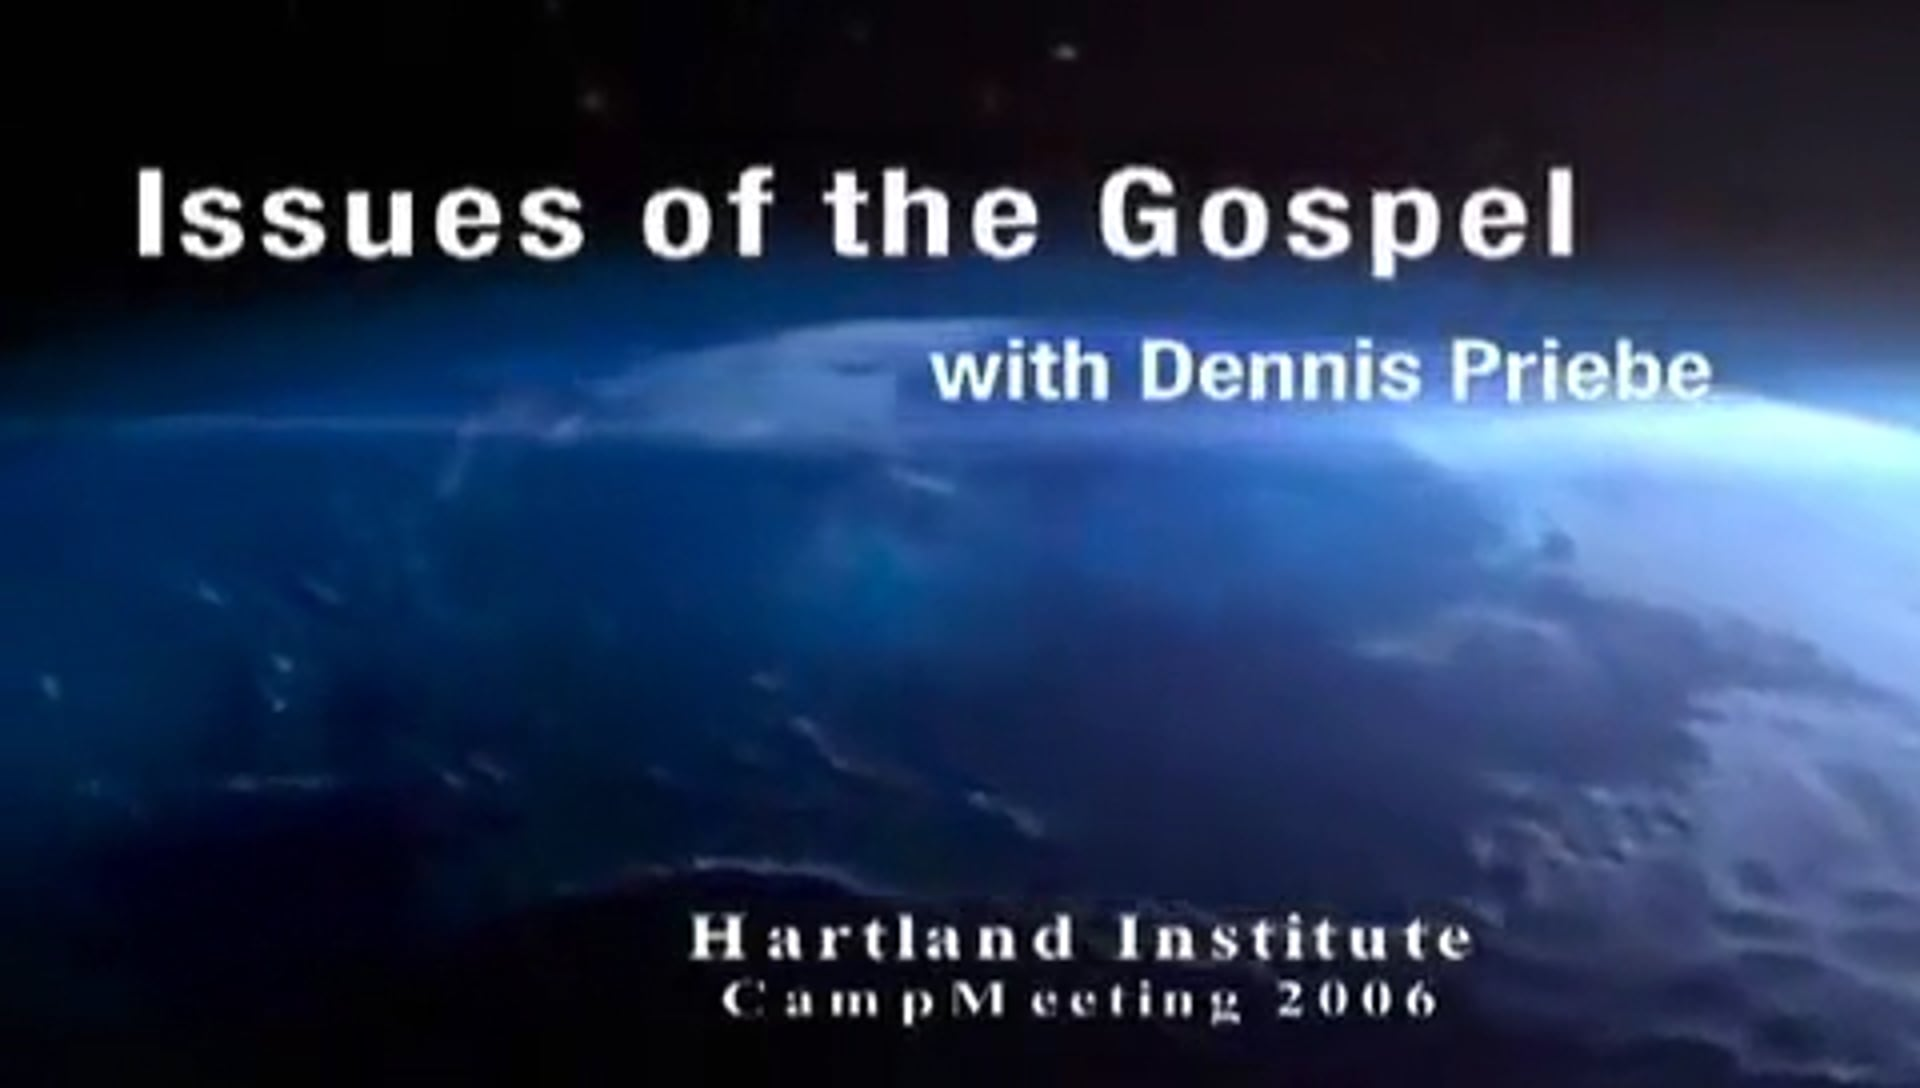 Dennis Priebe – Issues of the Gospel (Part 1)